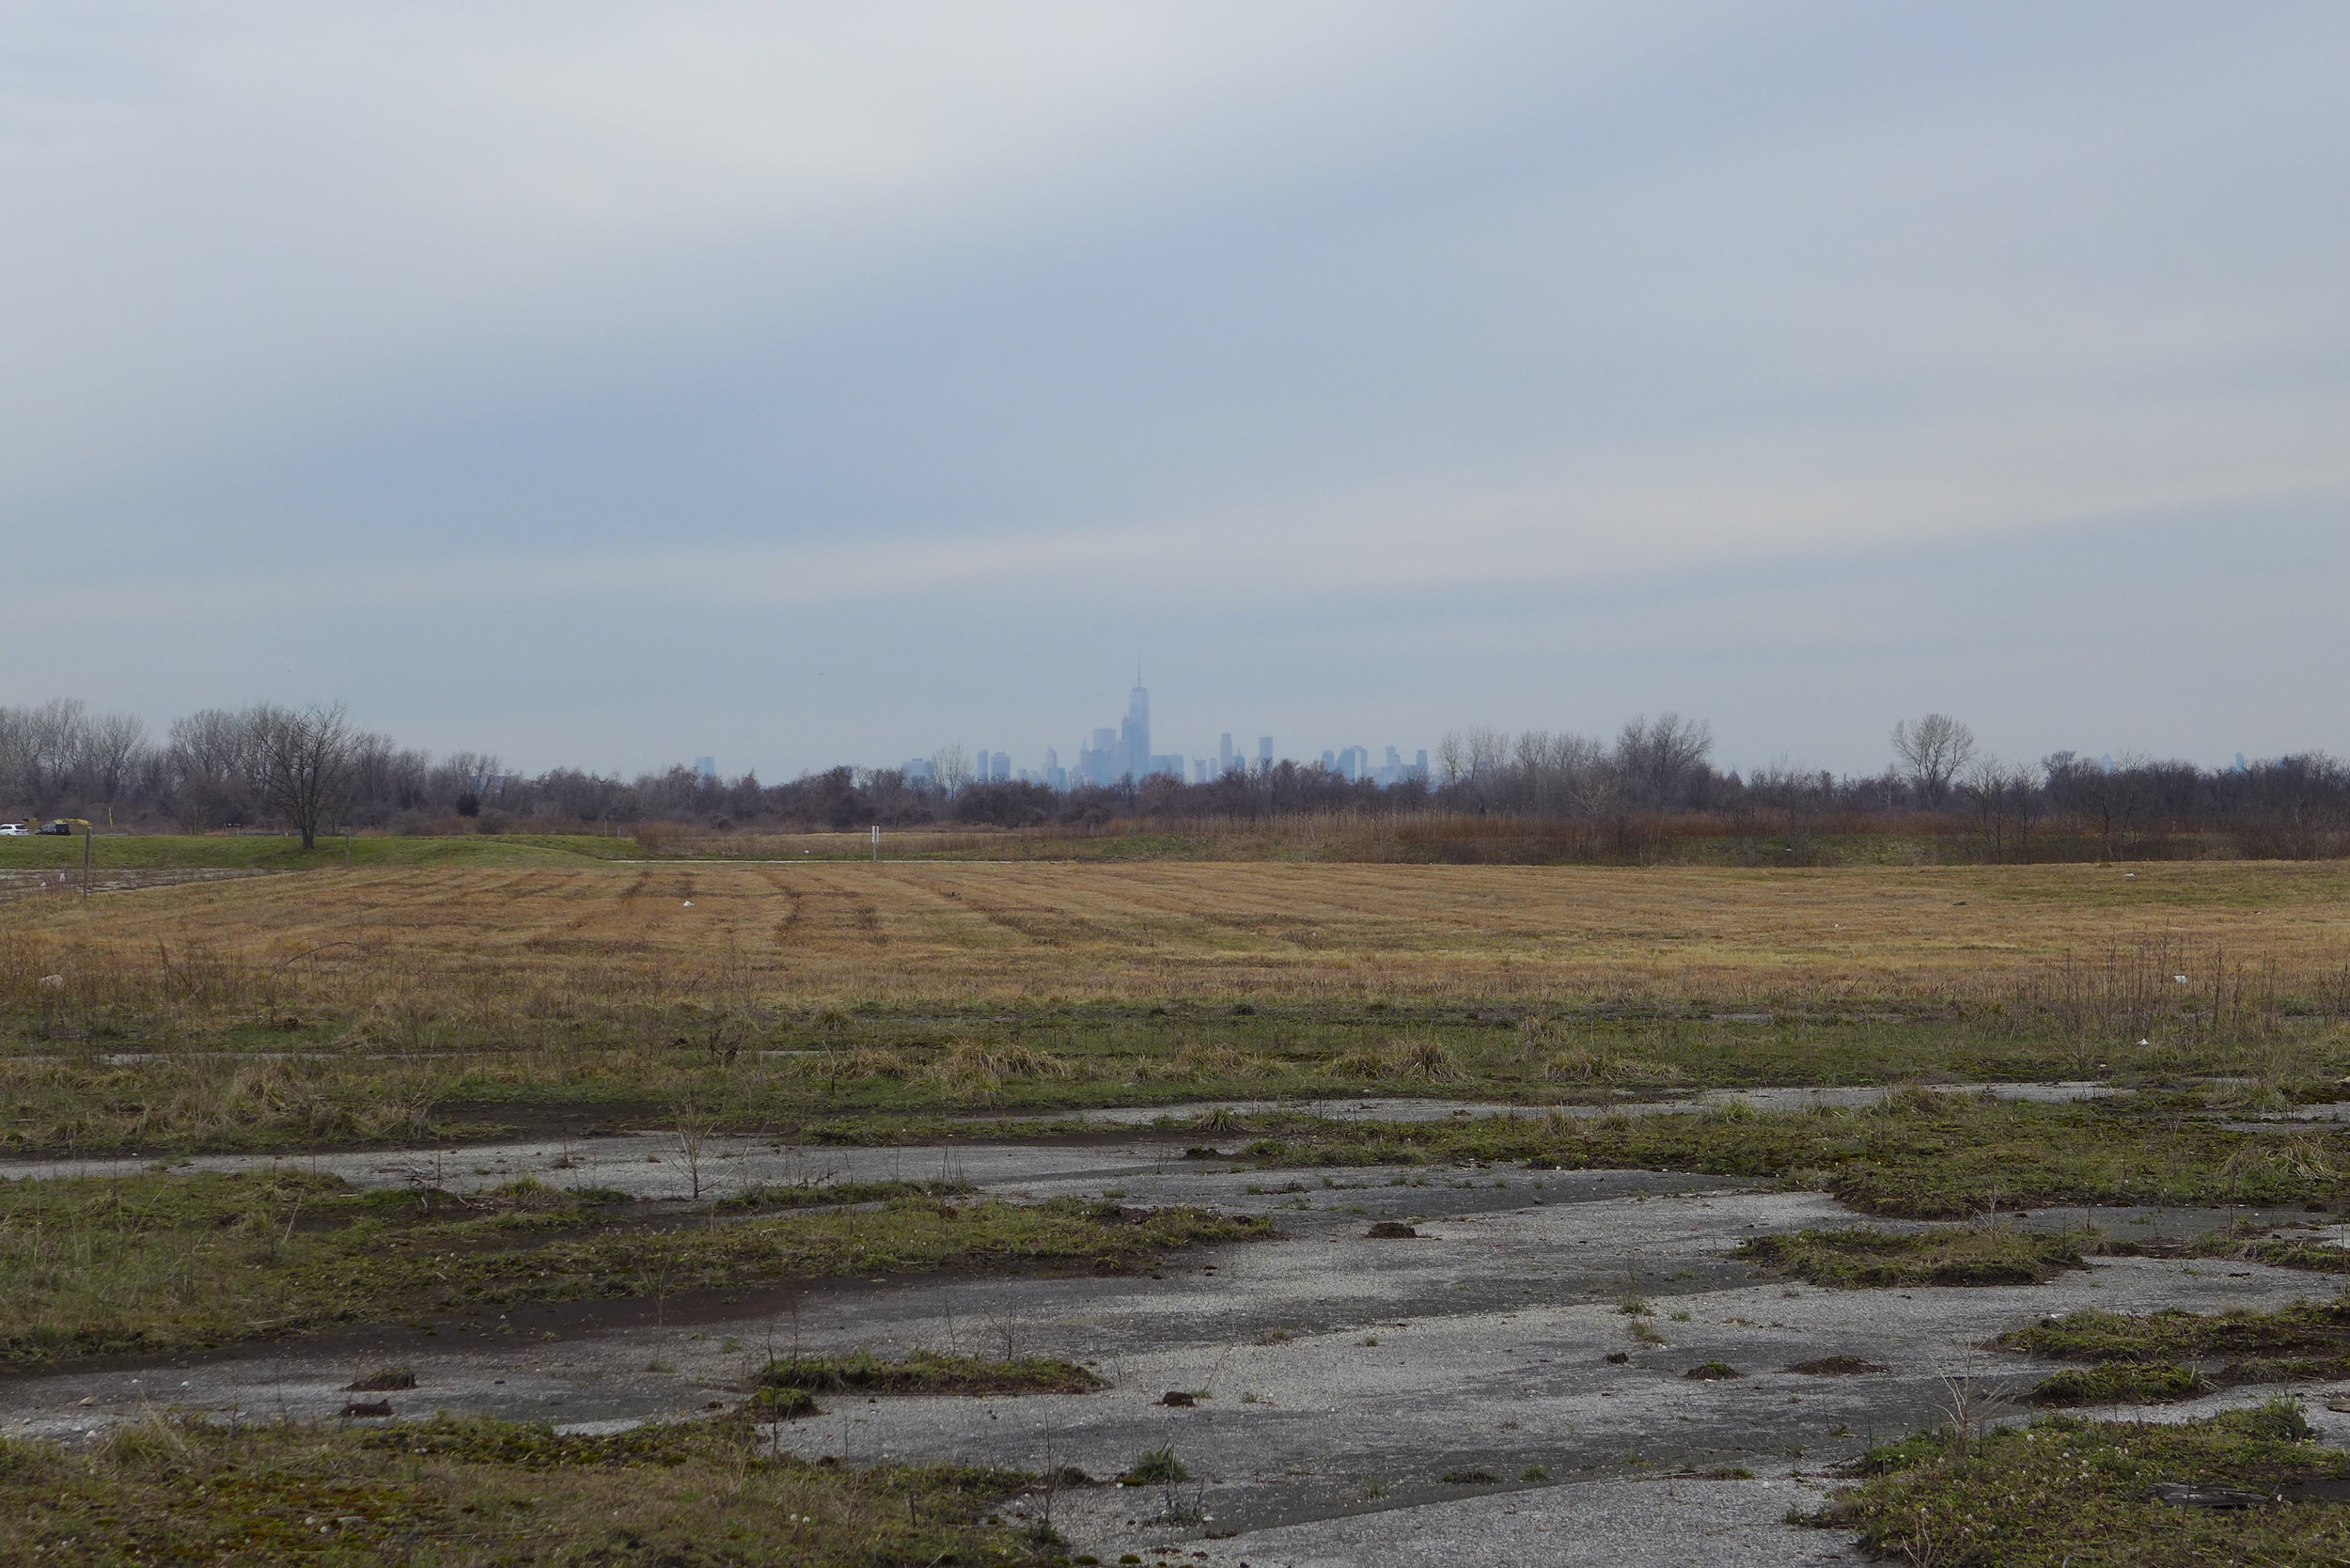 View of Manhattan from Floyd Bennett Field